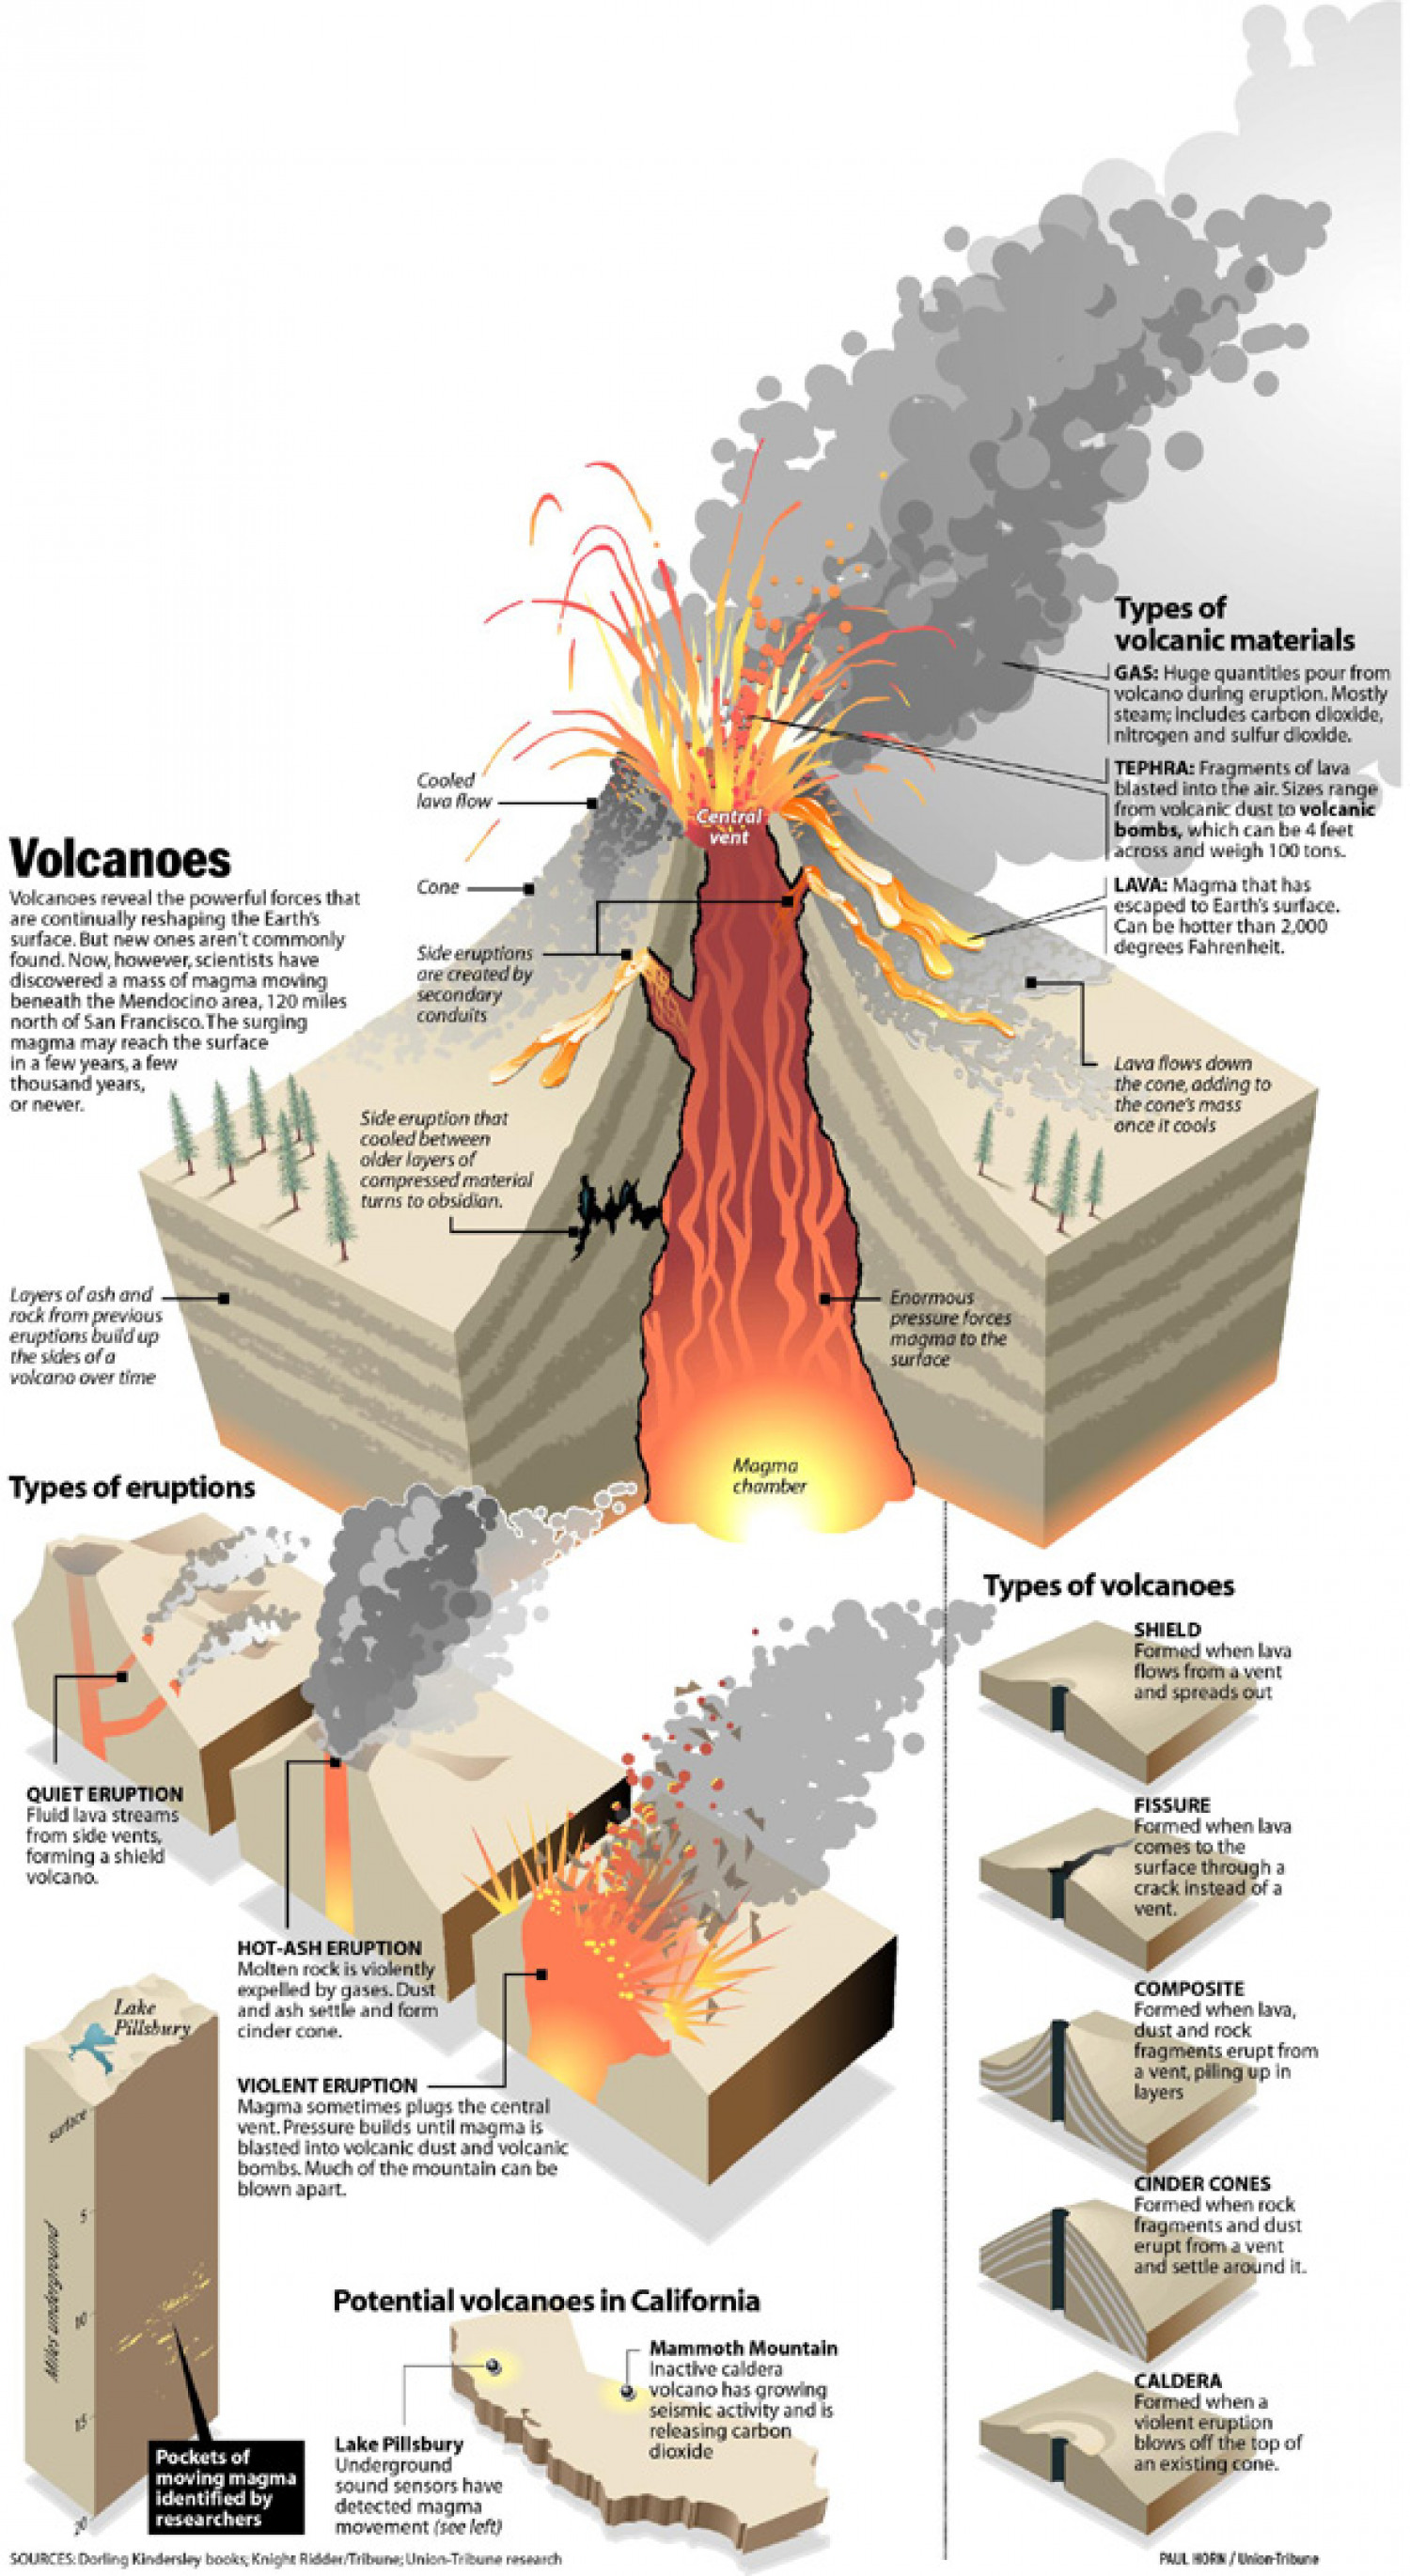 volcanoes 2019 news and scientific articles on live science - 615×1124